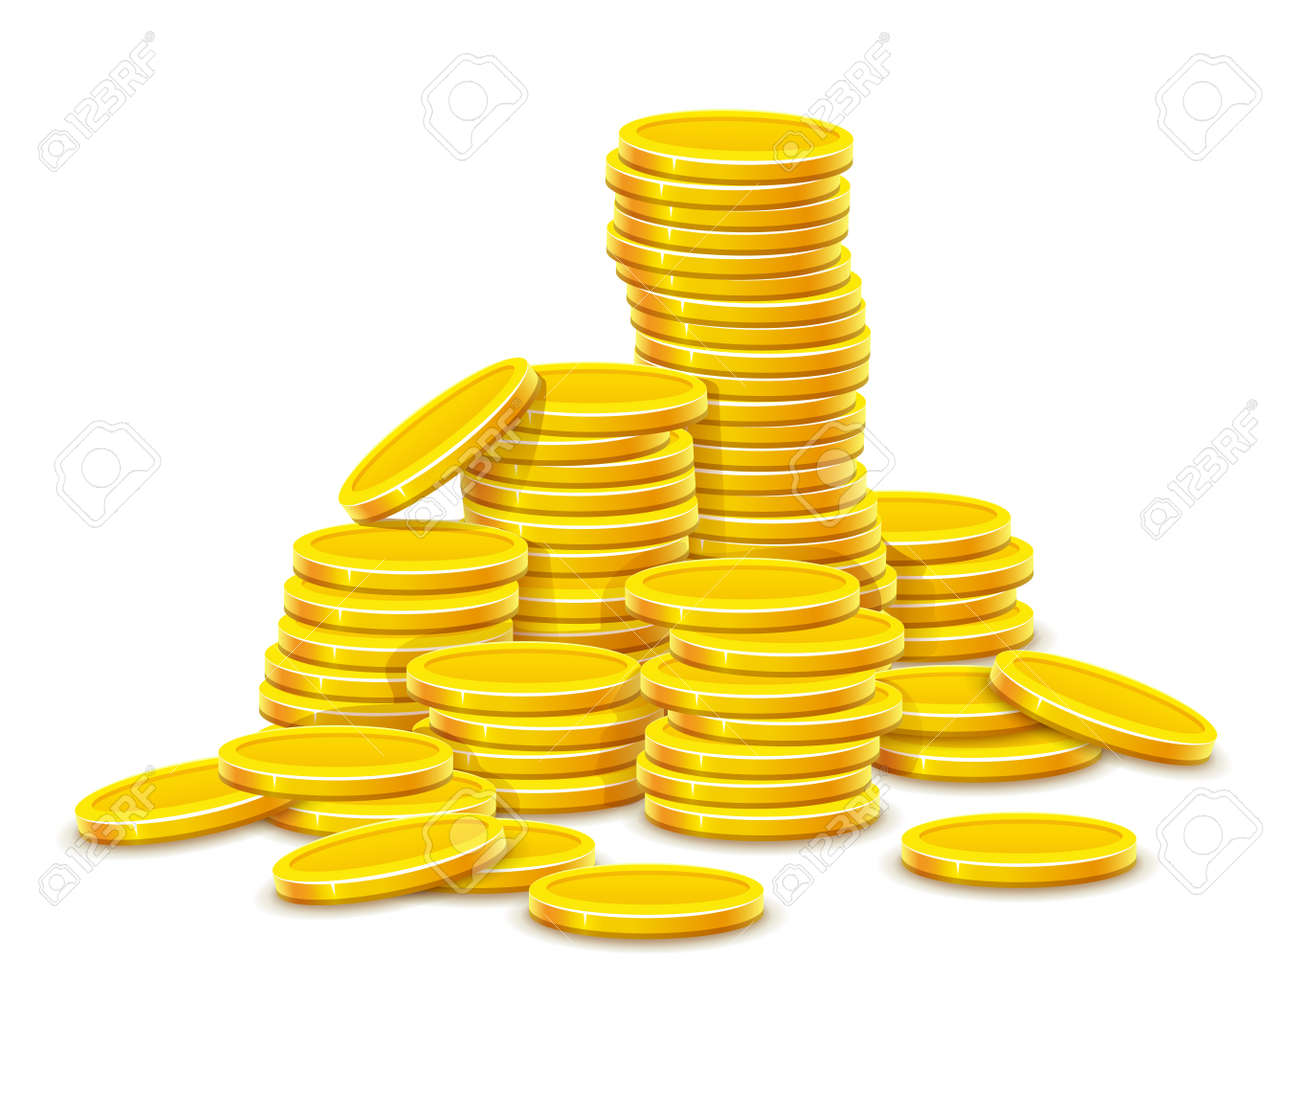 Gold coins cash money in rouleau. Isolated on white background - 43151267